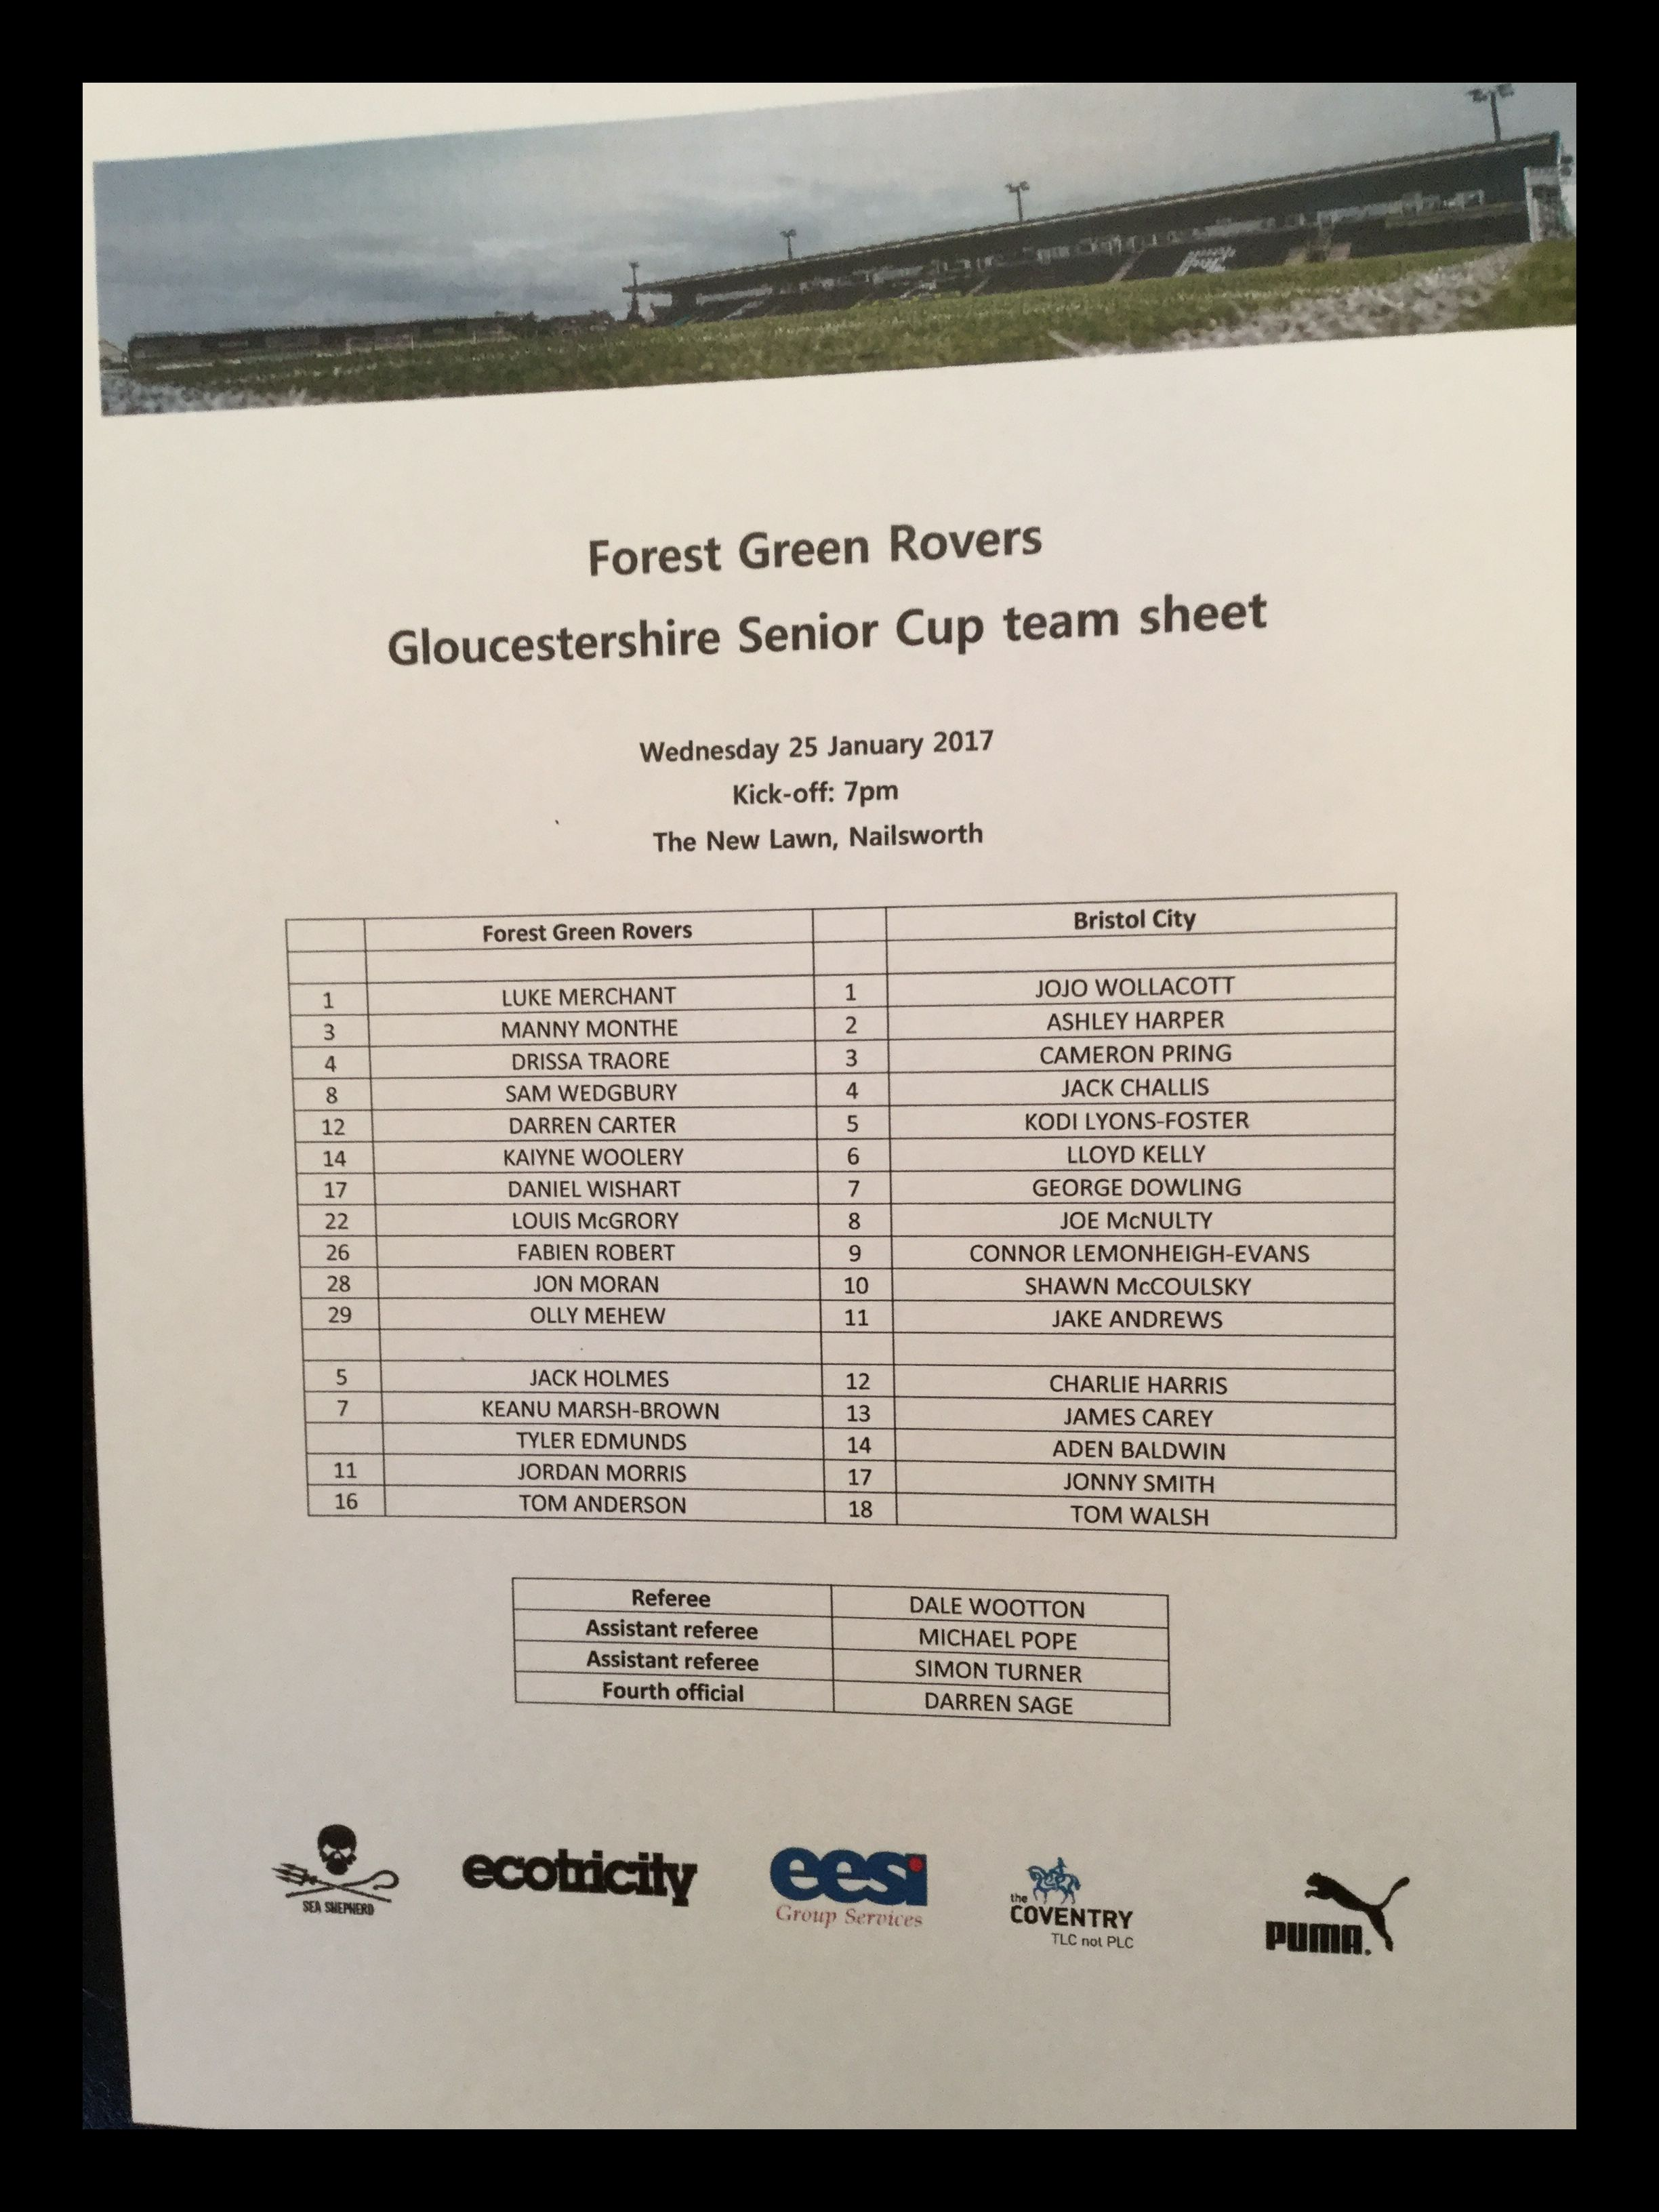 Forest Green Rovers v Bristol City 25-01-17 Team Sheet